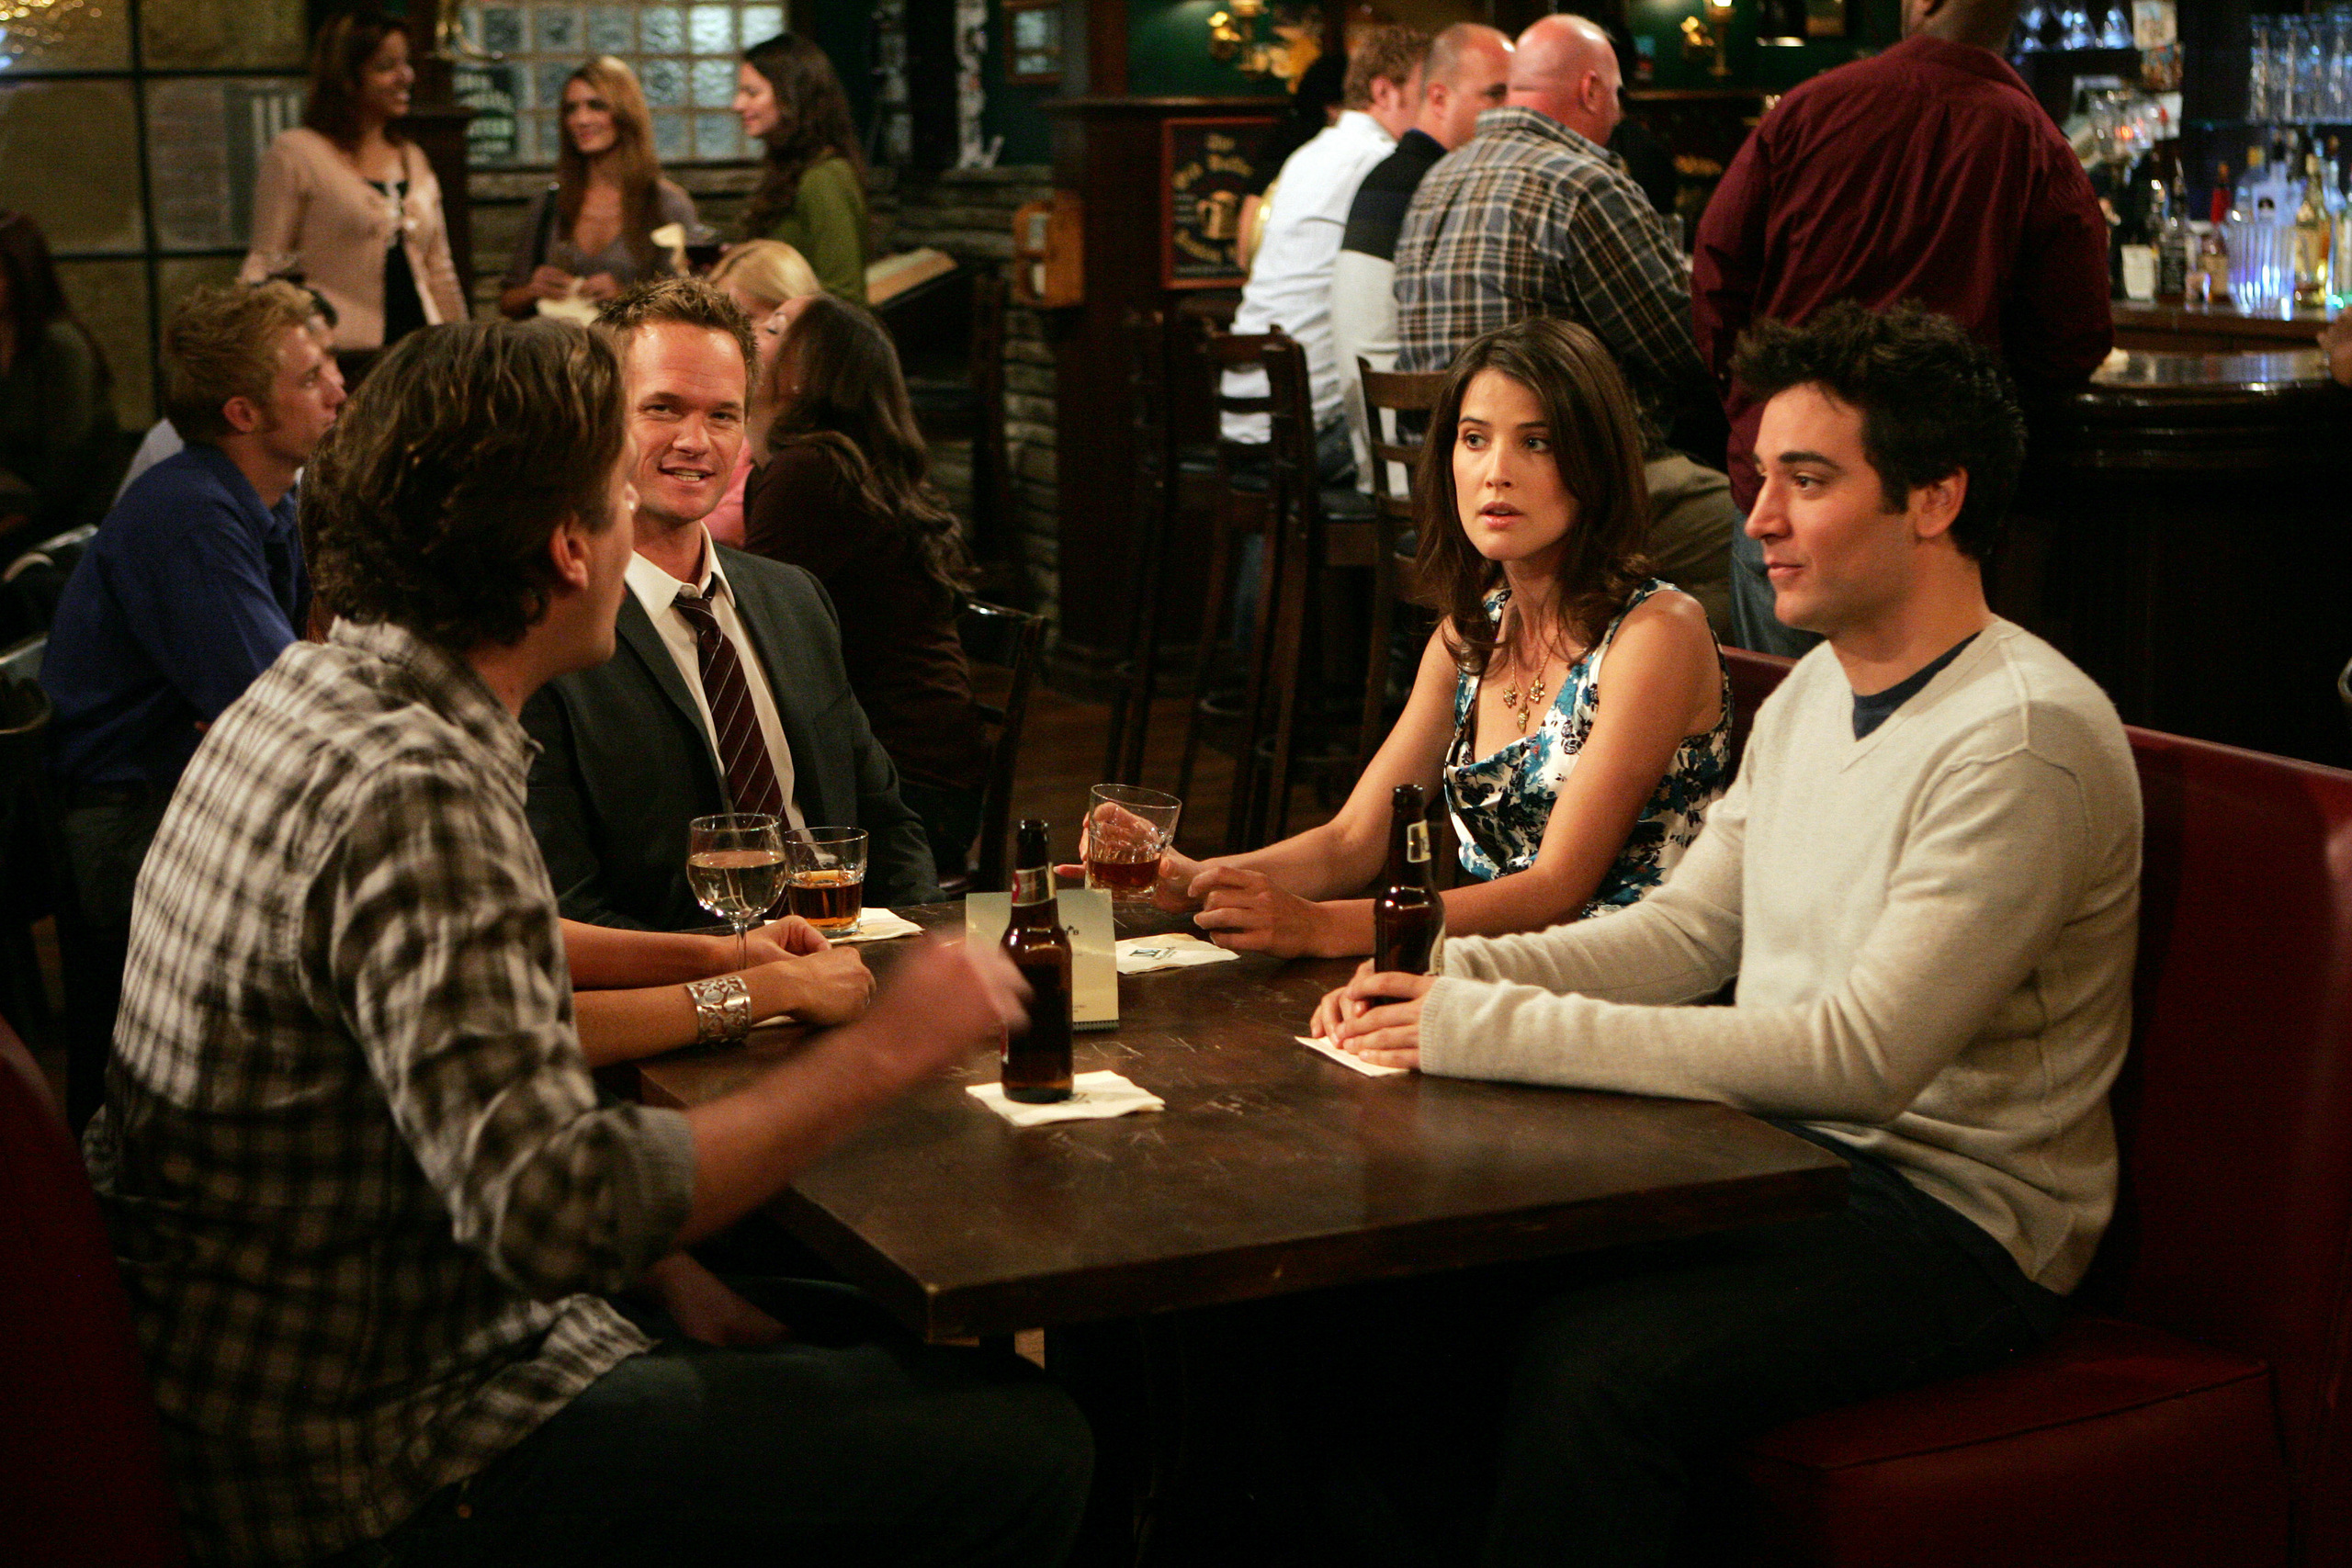 How I Met Your Mother images The Naked Man Promo's HD wallpaper and  background photos